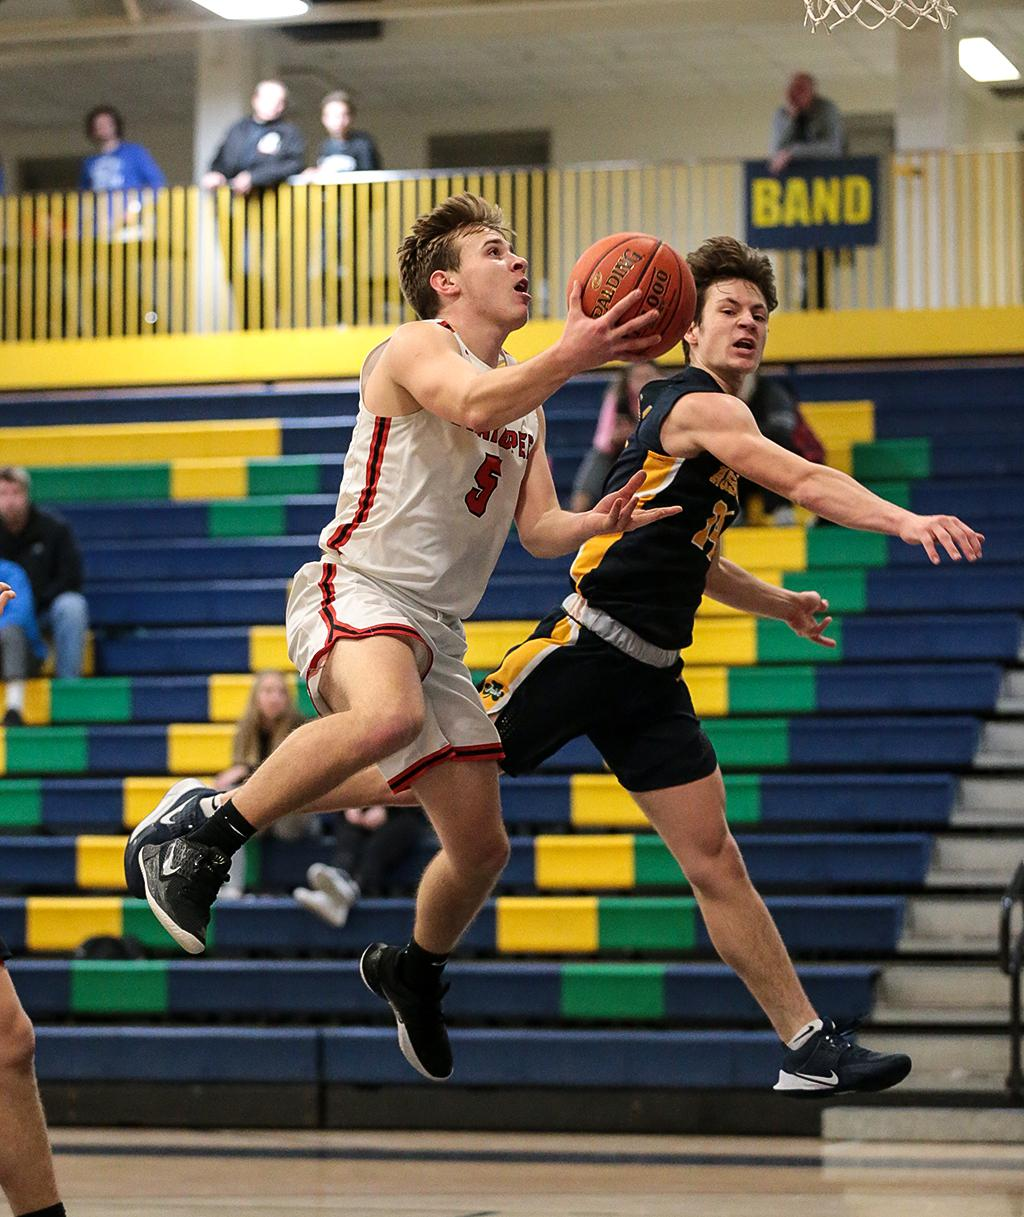 Shakopee's Caleb Druvenga (5) lays the ball up for two of his 15 points on Friday night. The Sabers took an early lead and eased past South Suburban Conference rival Rosemount for an 84-71 win. Photo by Cheryl A. Myers, SportsEngine